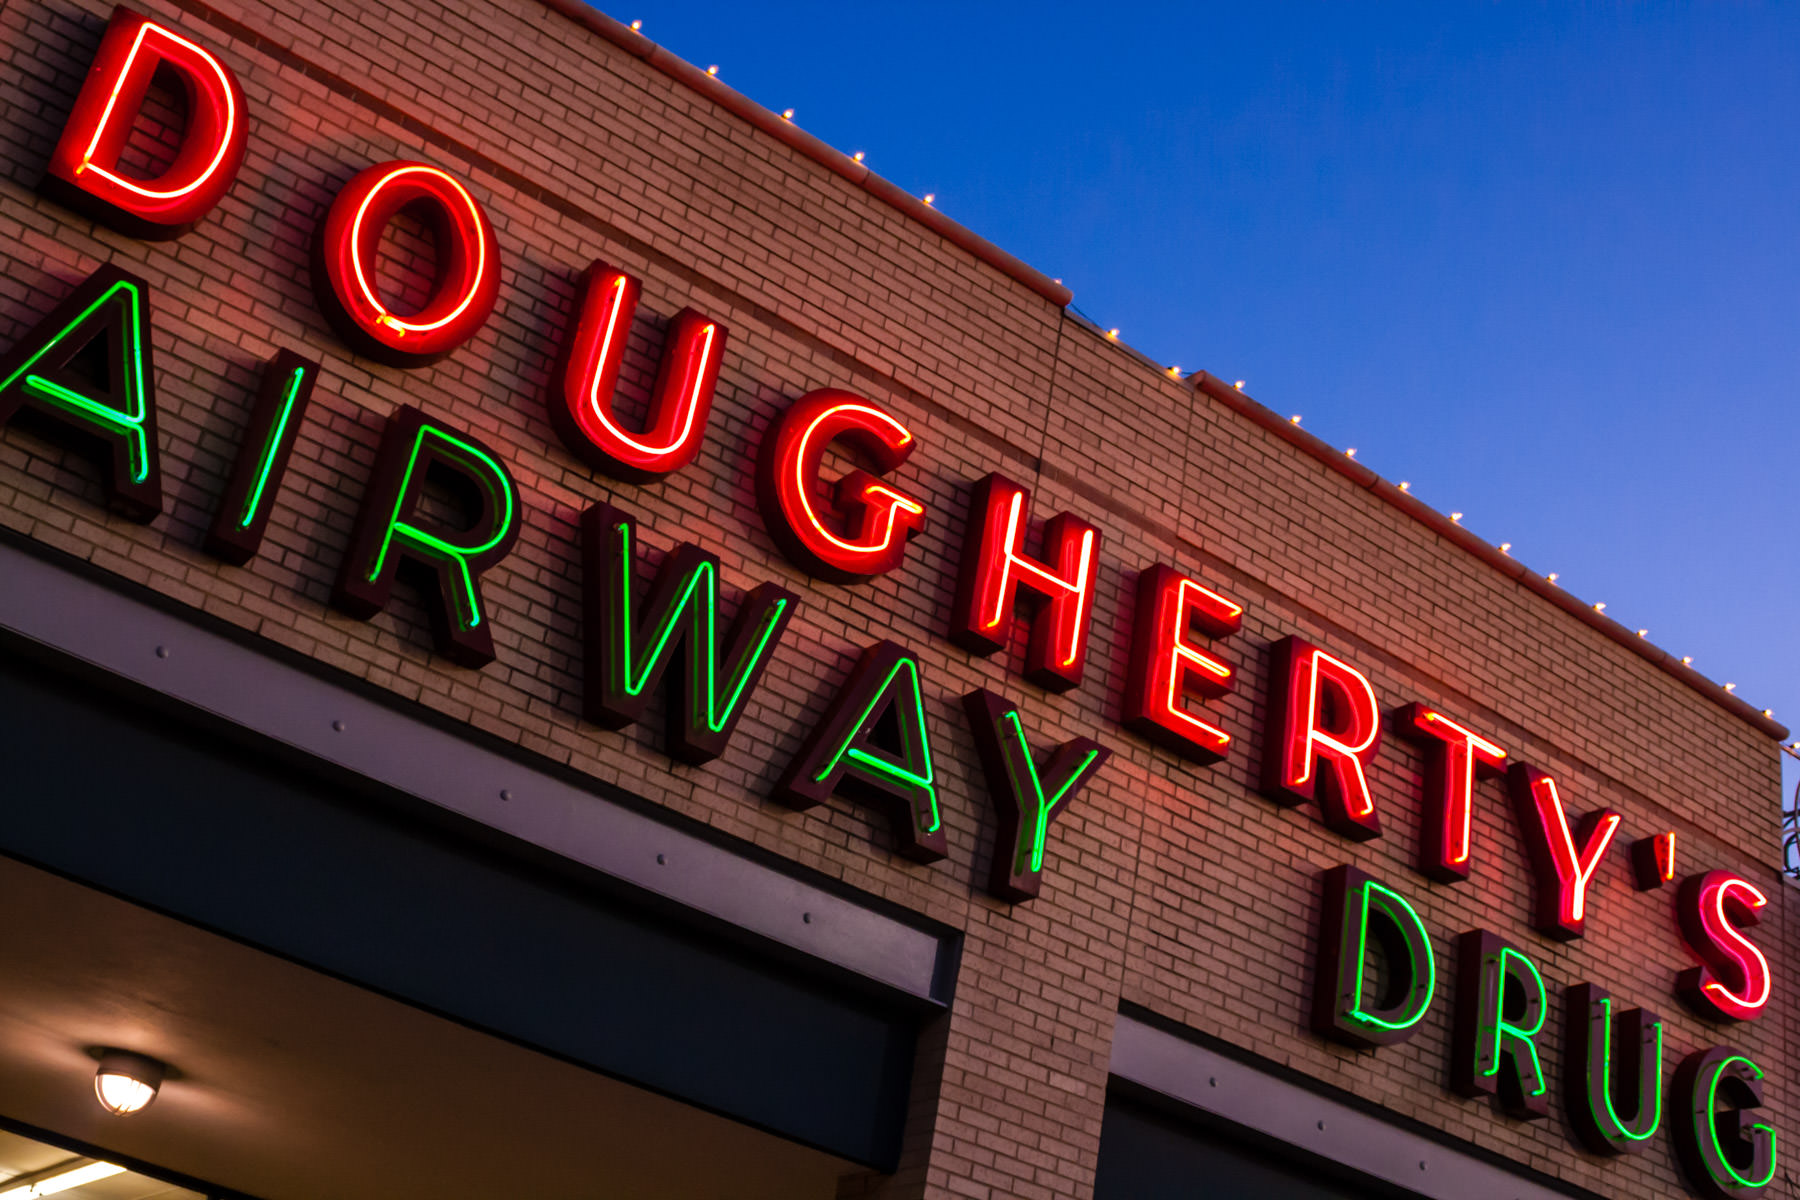 The neon sign of Dougherty's Airway Drug store in Dallas, Texas.